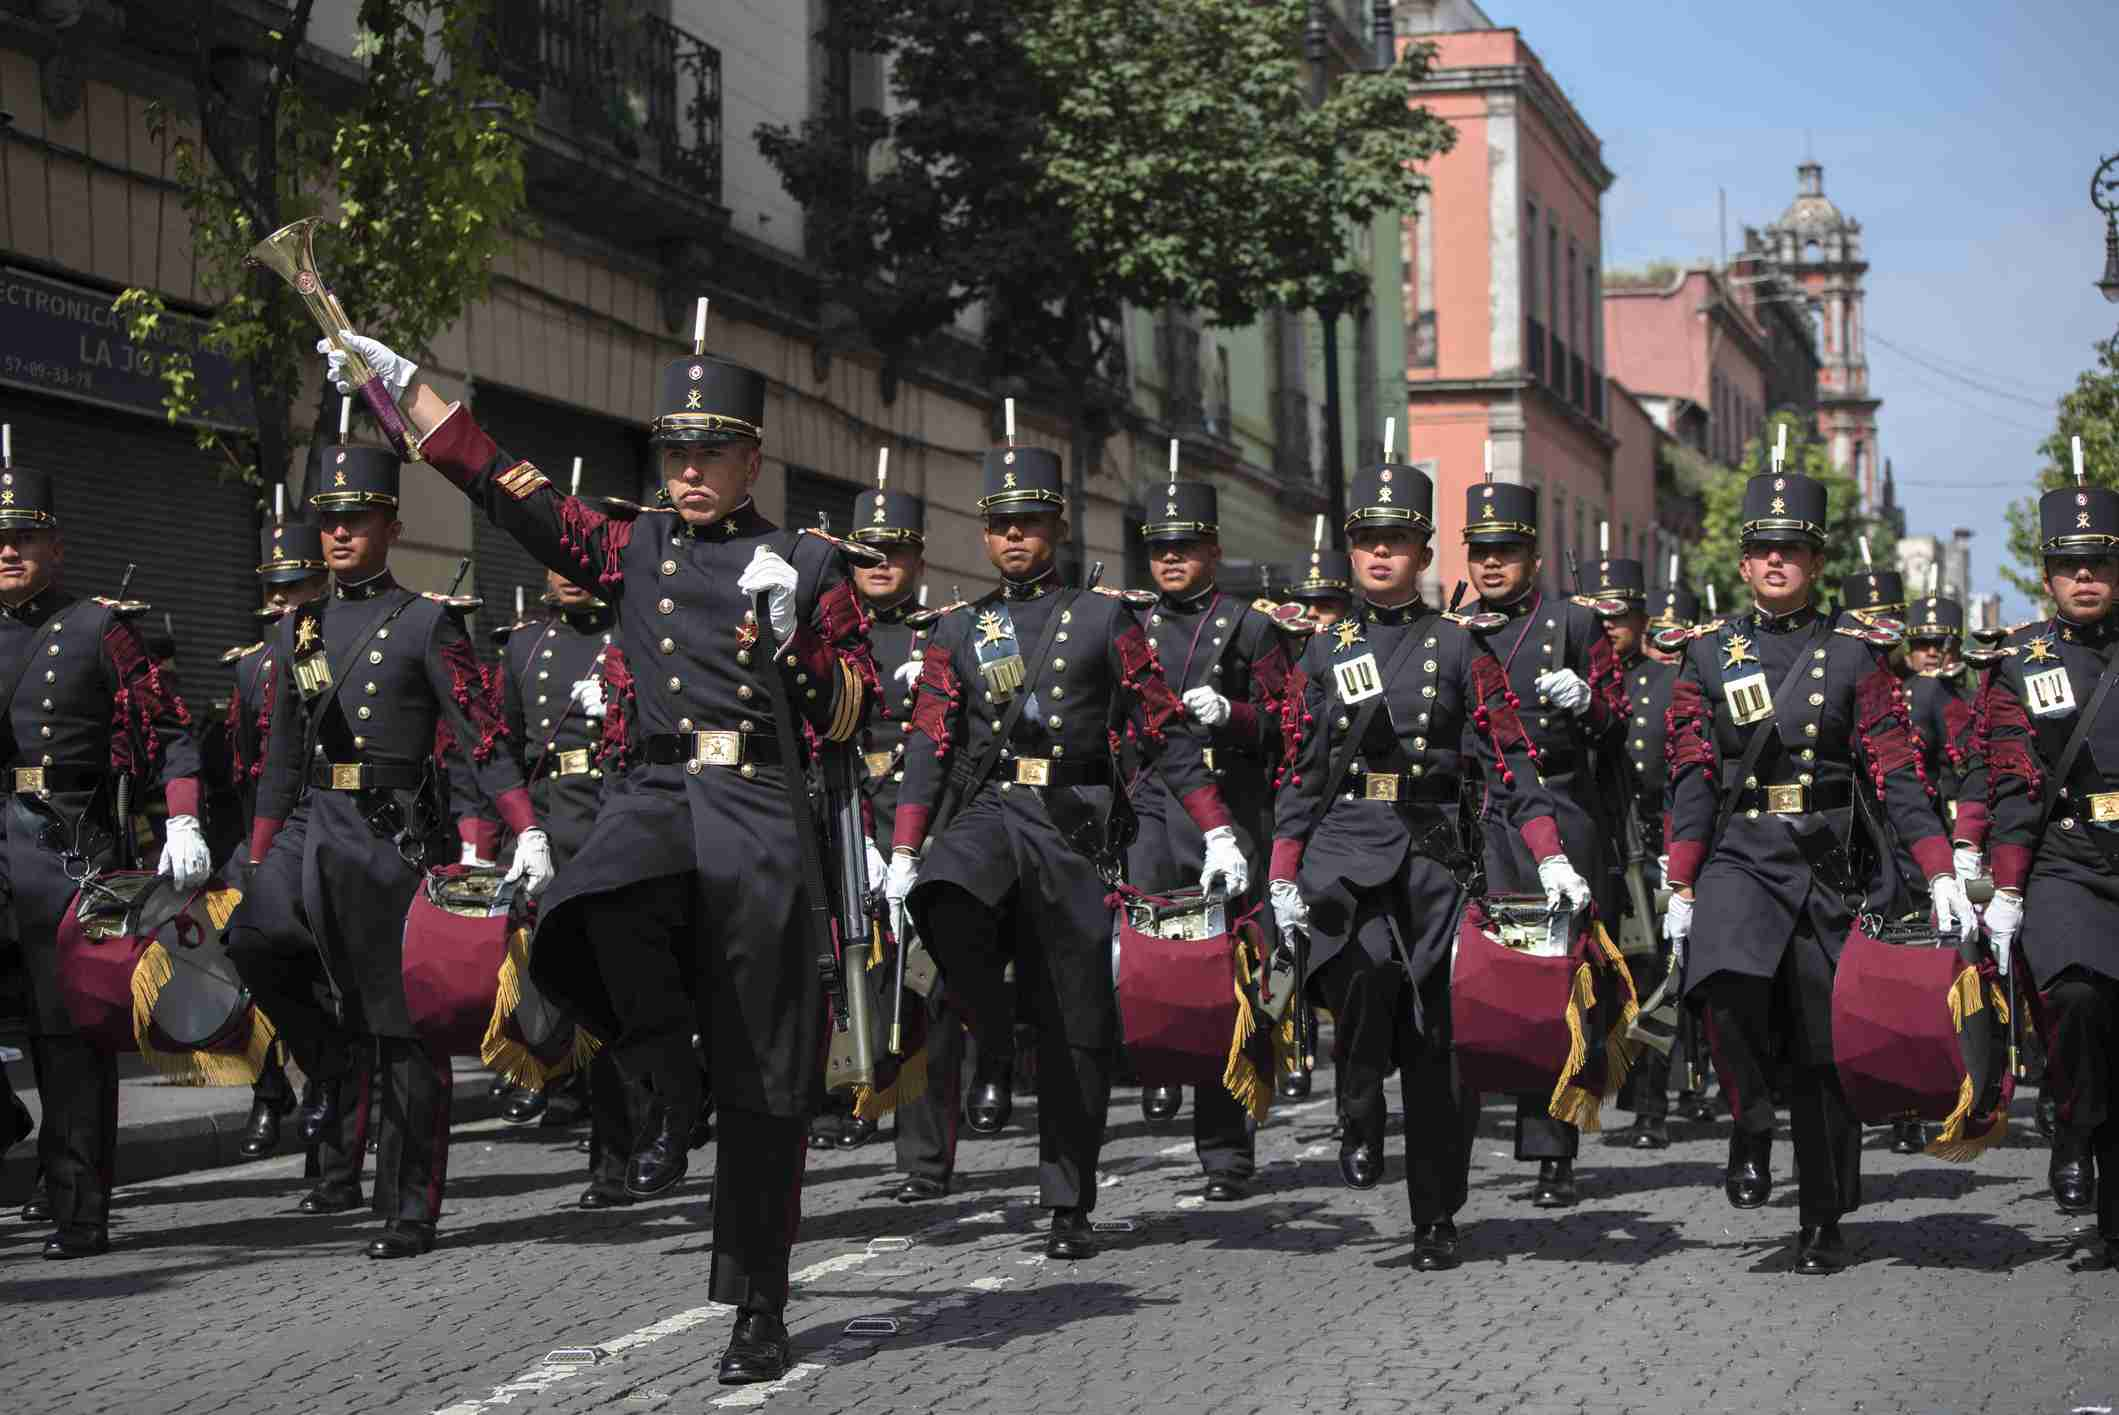 Military personnel dressed in balck and red uniforms and carrying drums in the Mexican independence day celebration